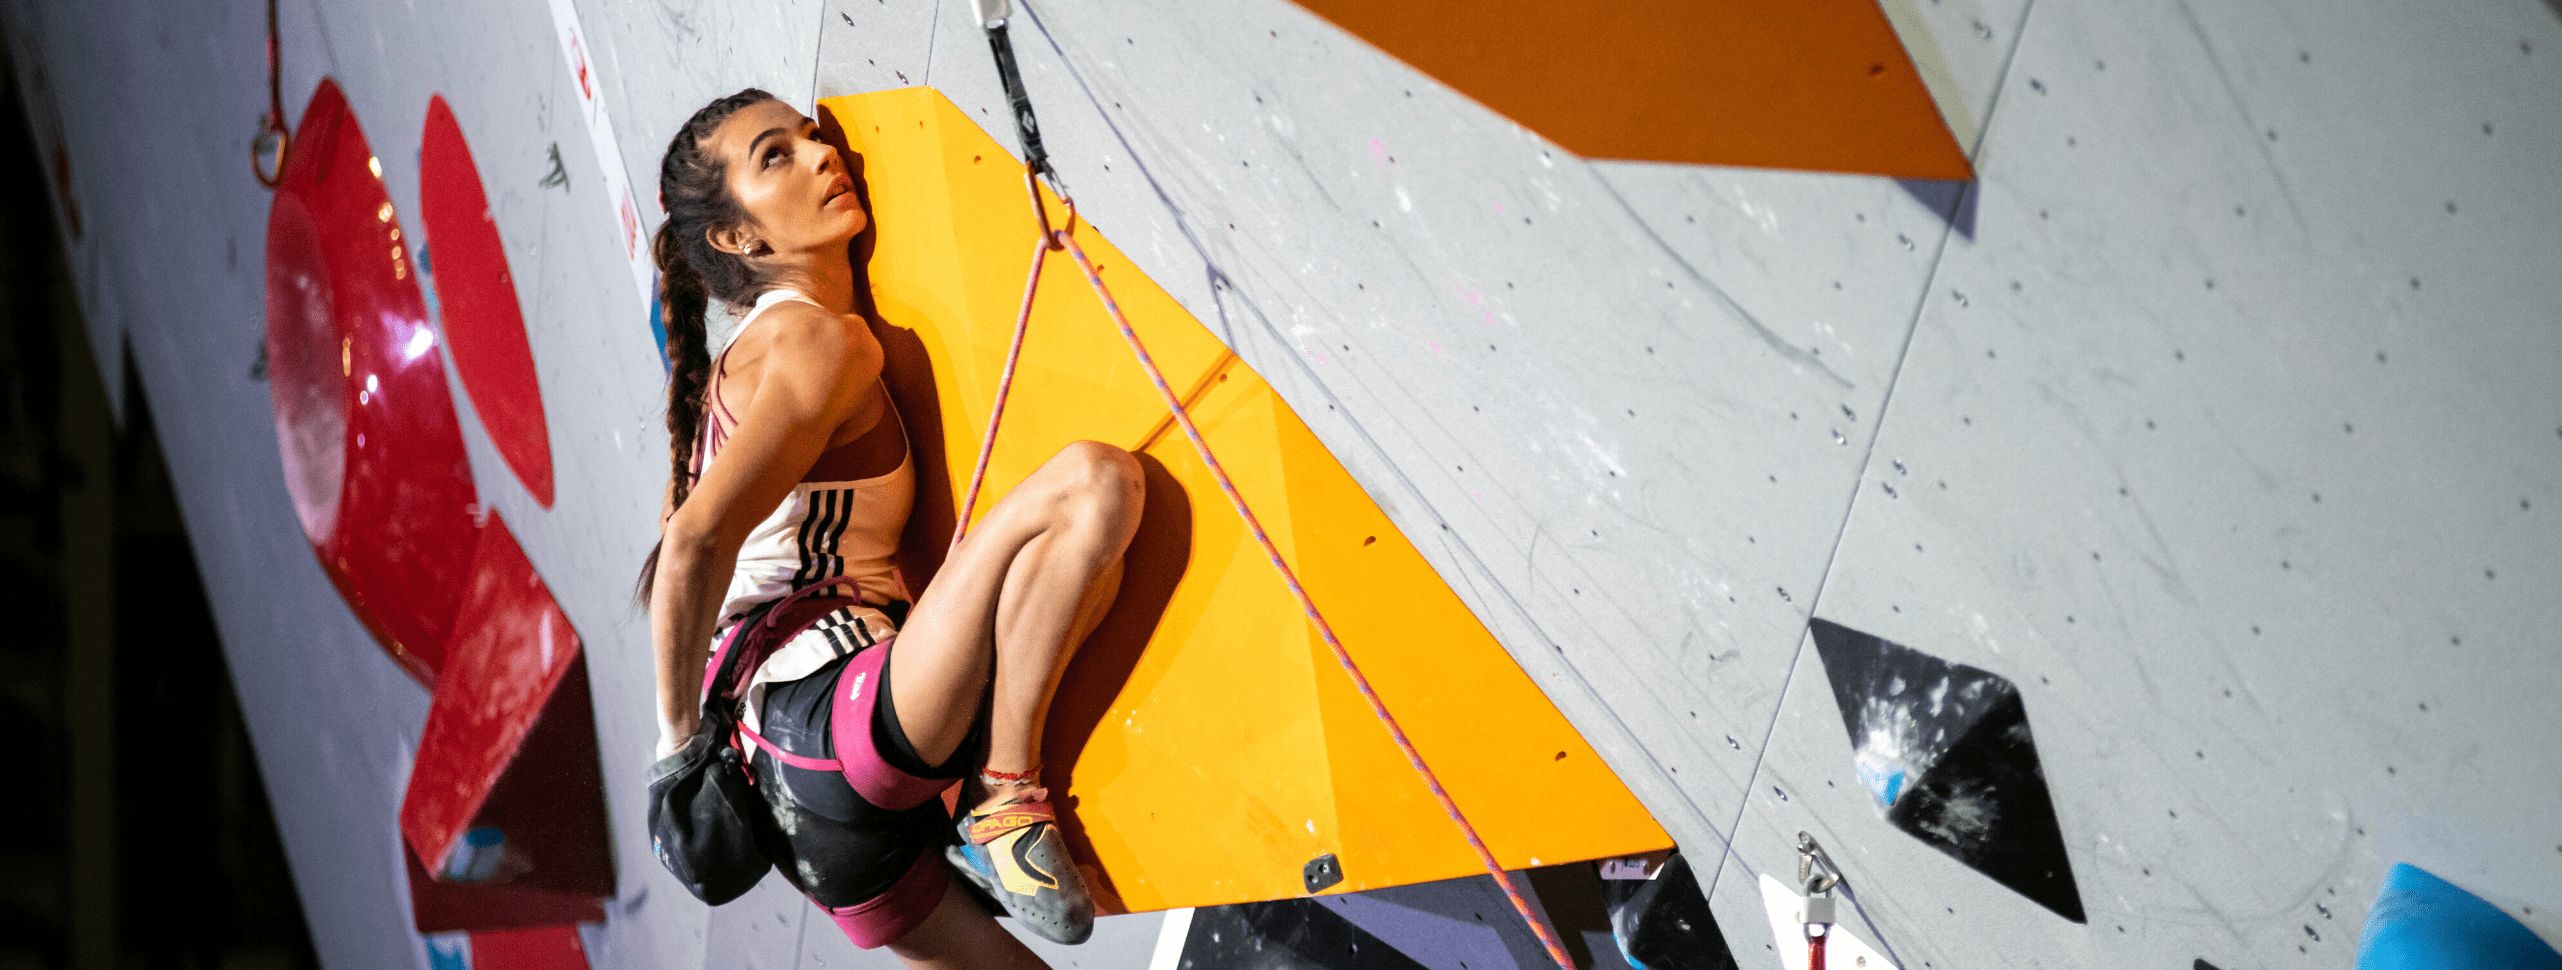 IFSC Official Sport Equipment Catalogue: Applications Open for 2020 Holds, Macros and Volumes